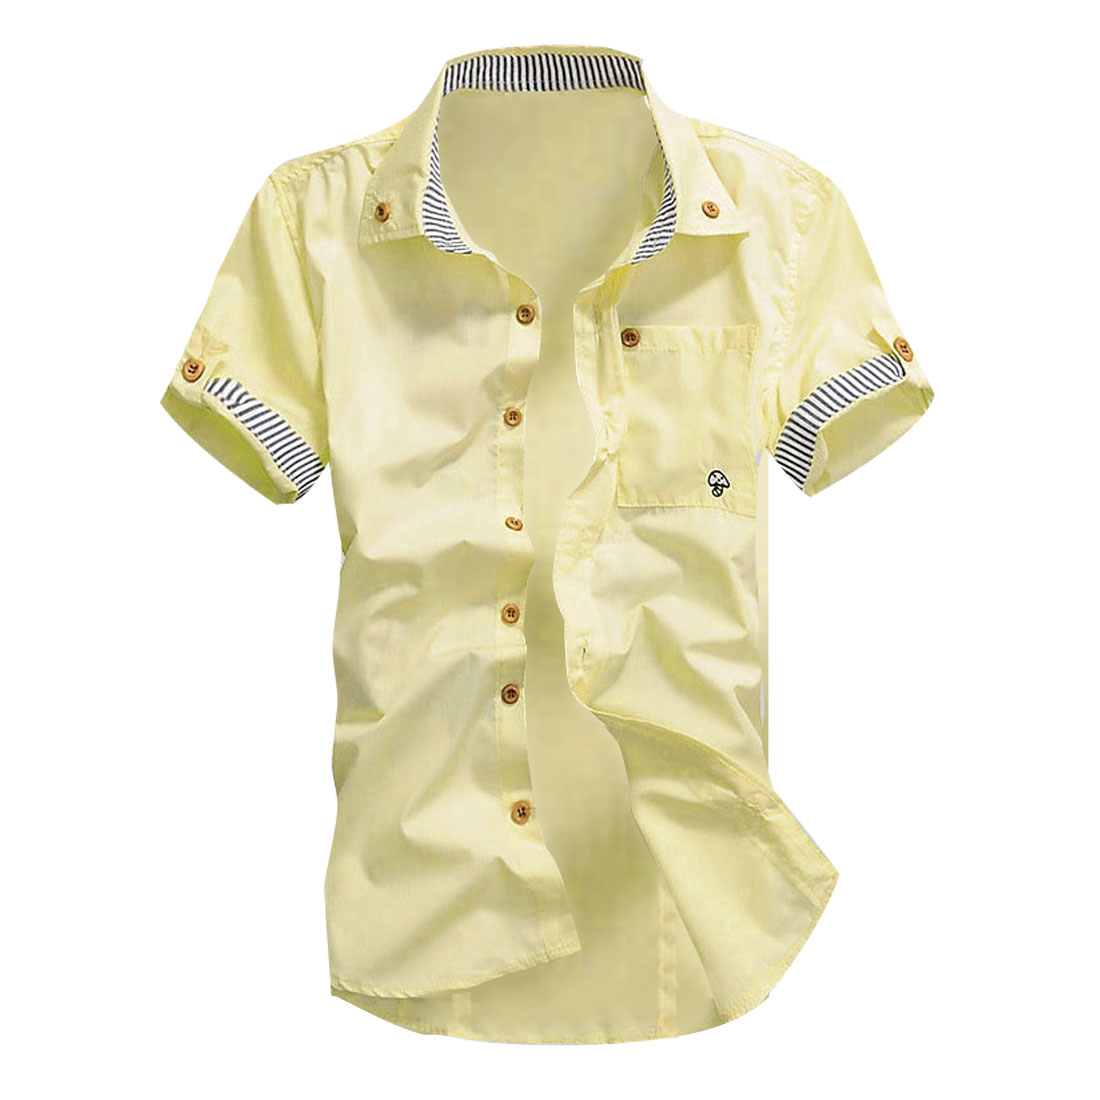 Man Korean Style Short Sleeves Point Collar Chic Shirt Light Yellow M